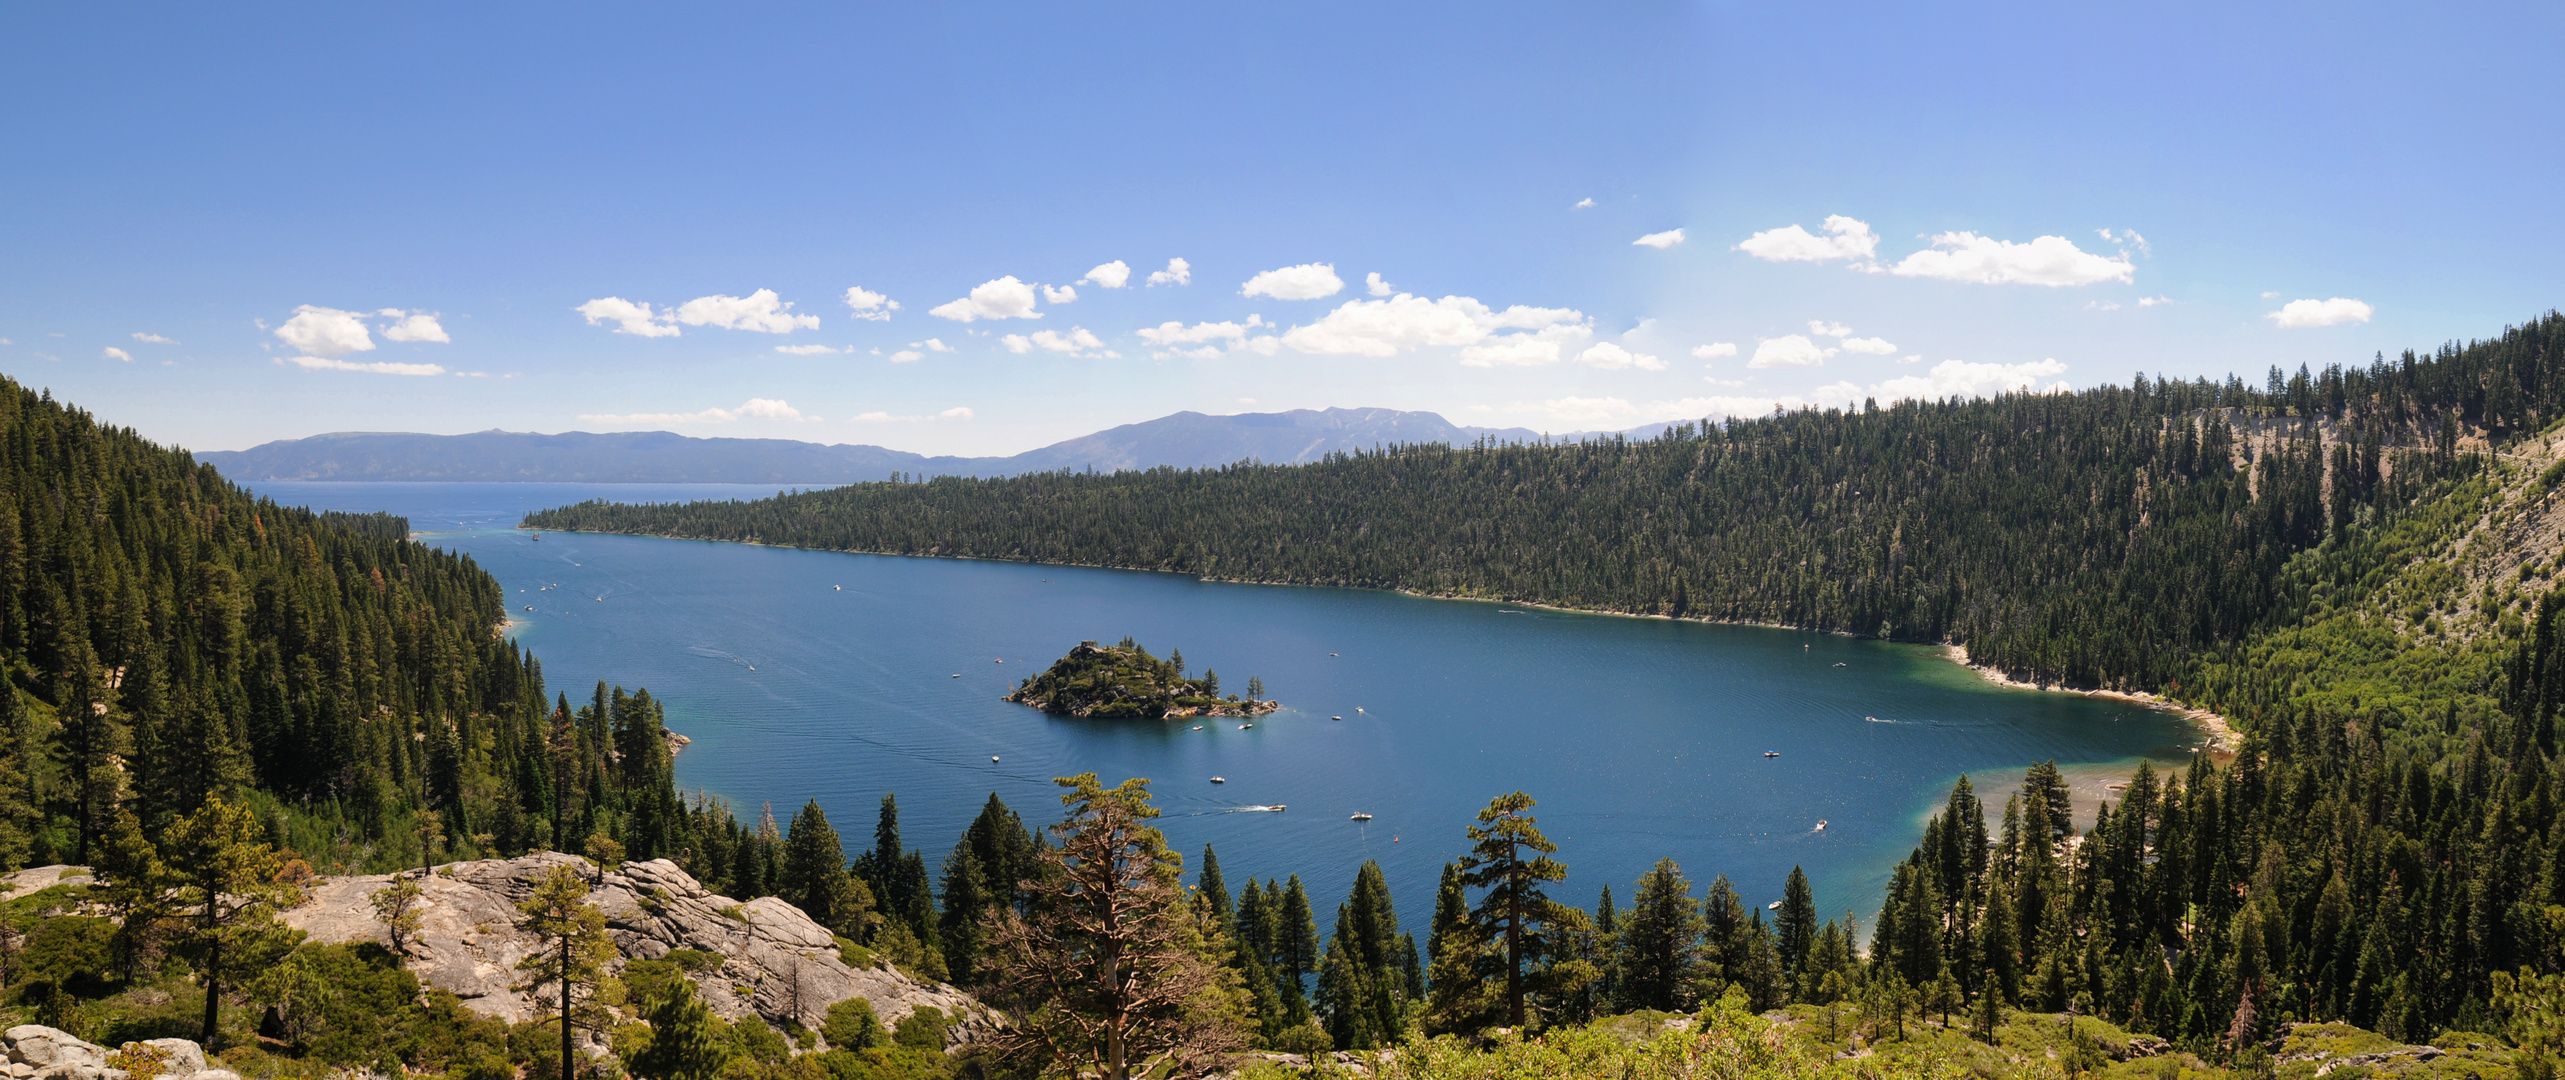 Emerald Bay- Lake Tahoe